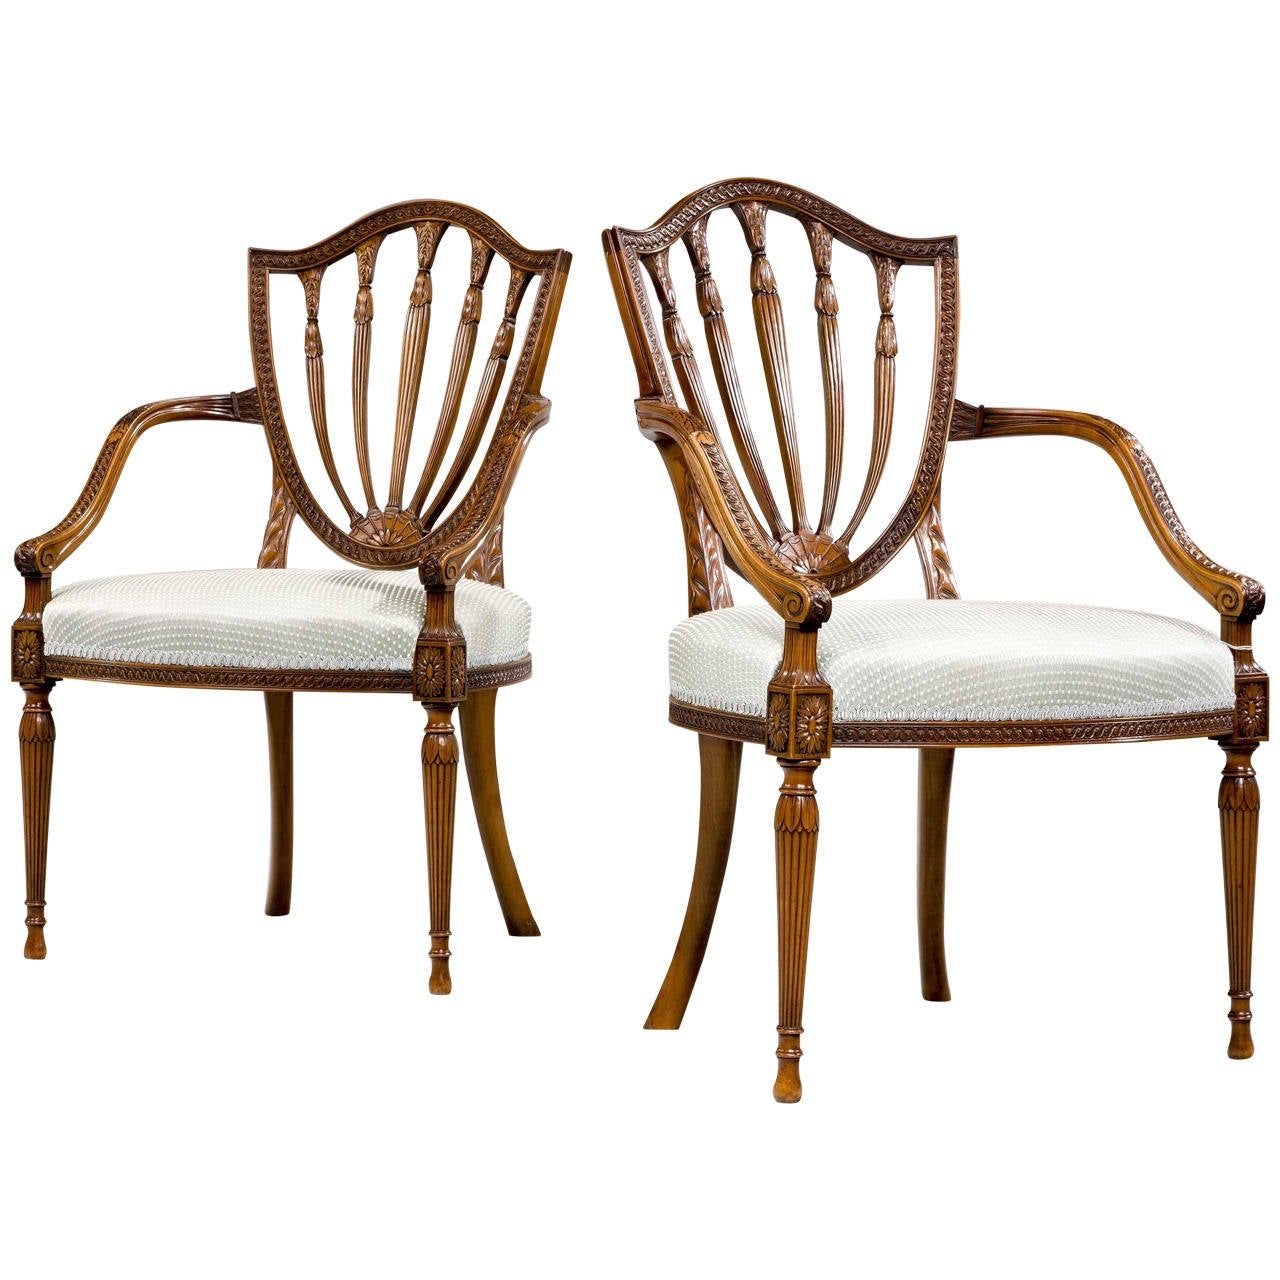 elbow chair stool design your own pair of george iii period satinwood chairs for sale